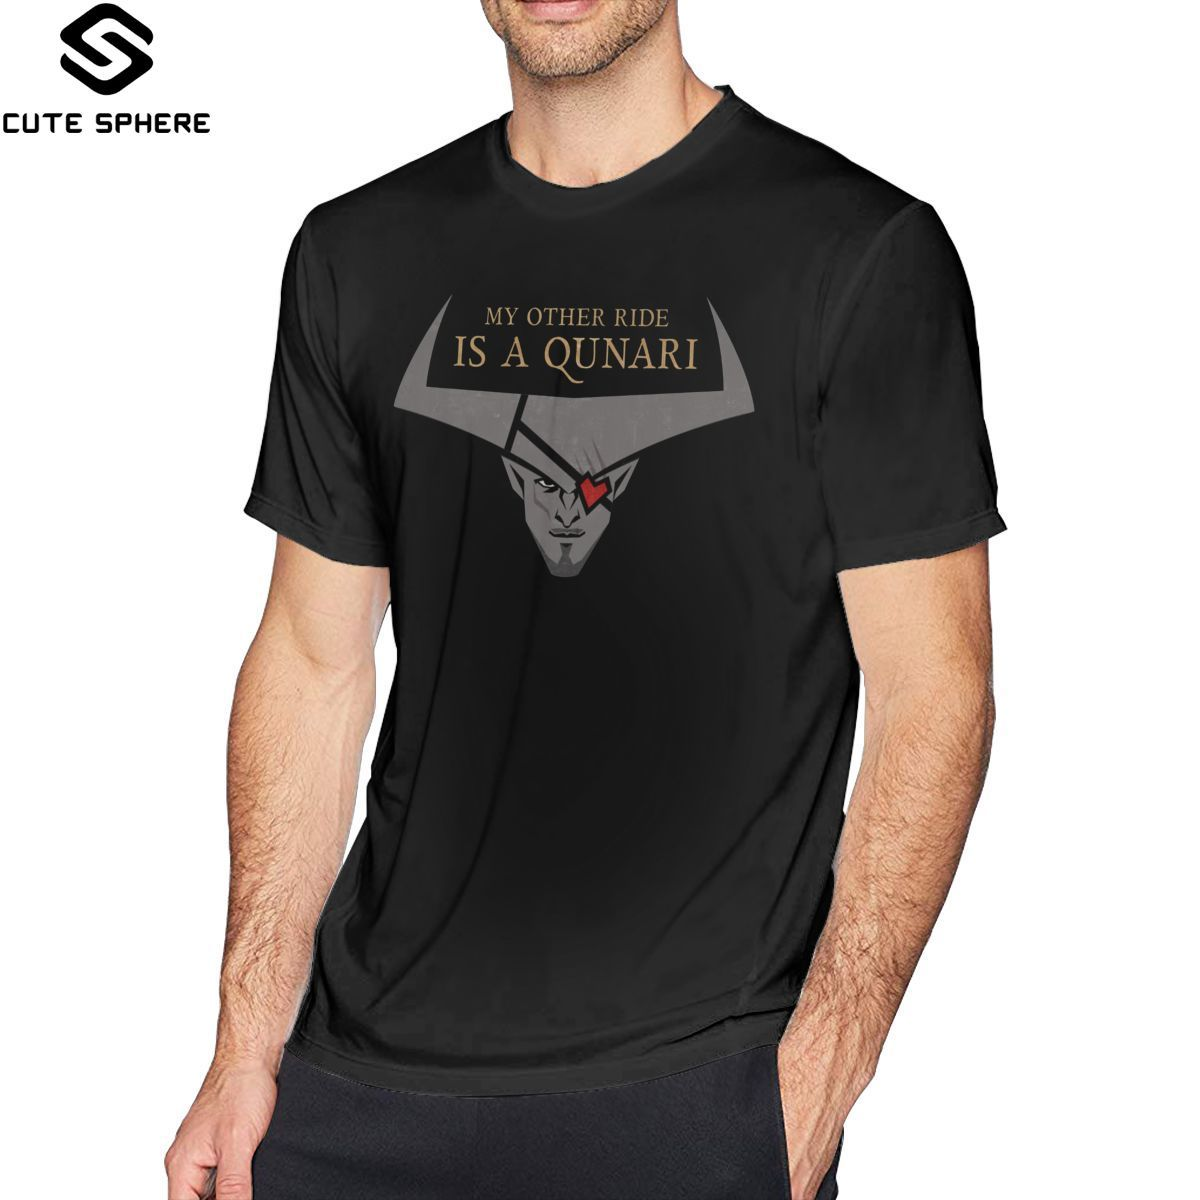 Dragon Age Inquisition T Shirt My Other Ride T-Shirt Short-Sleeve 100 Percent Cotton Tee Shirt <font><b>Funny</b></font> <font><b>Tshirt</b></font> image